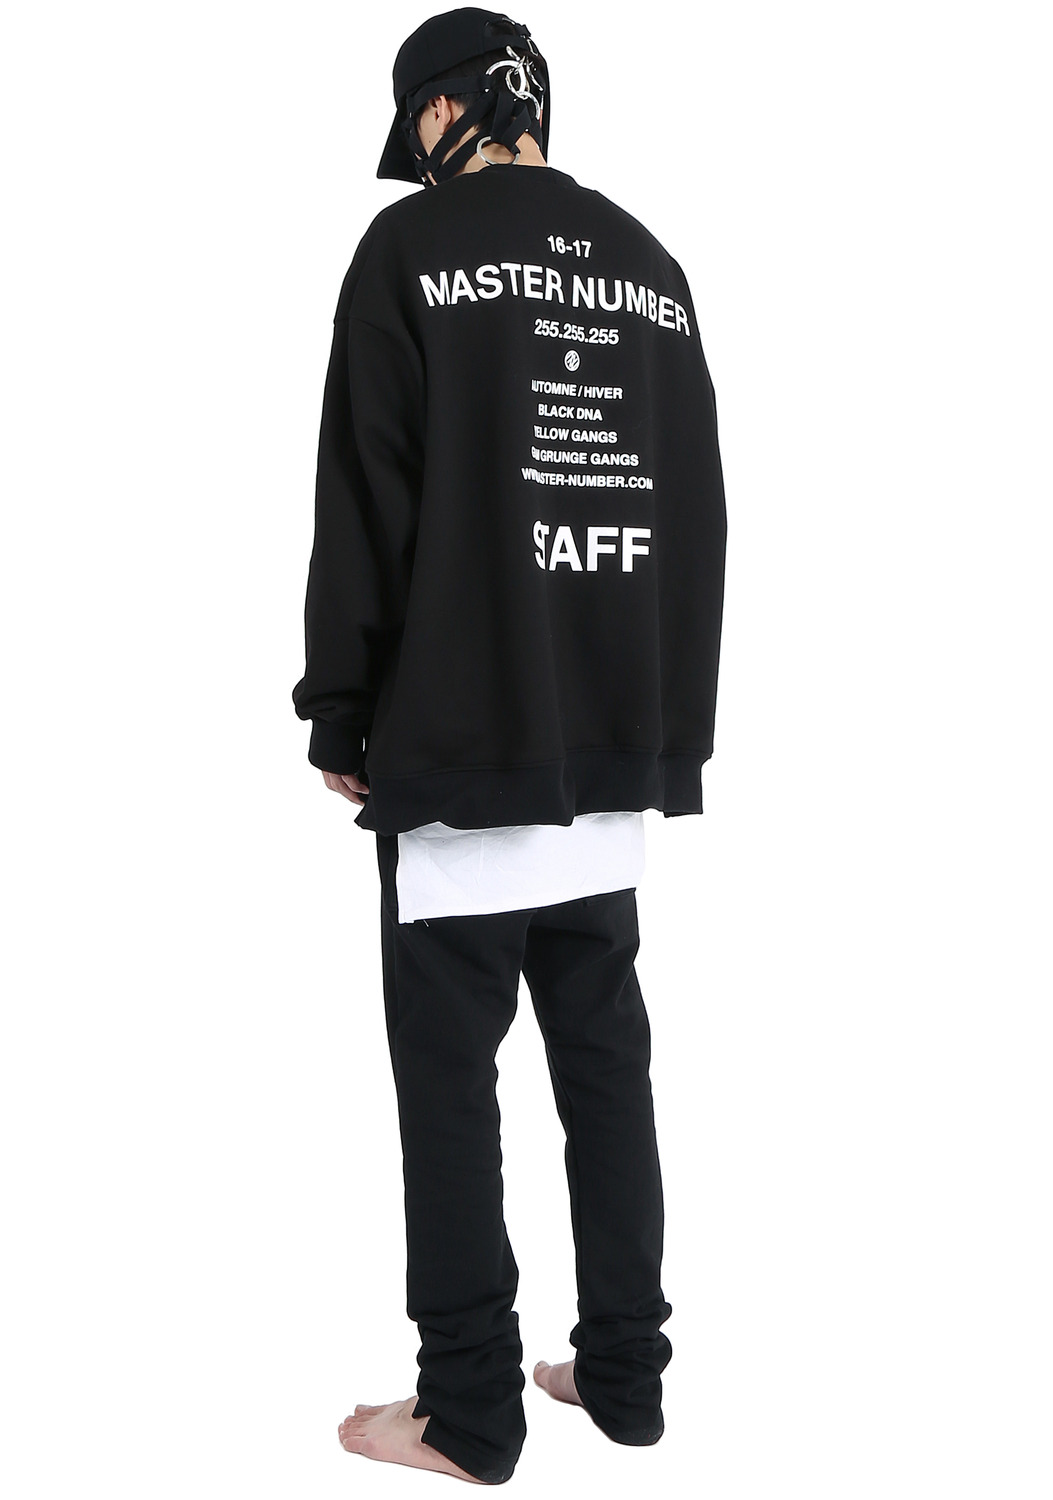 MASTER NUMBER STAFF SWEAT SHIRTS